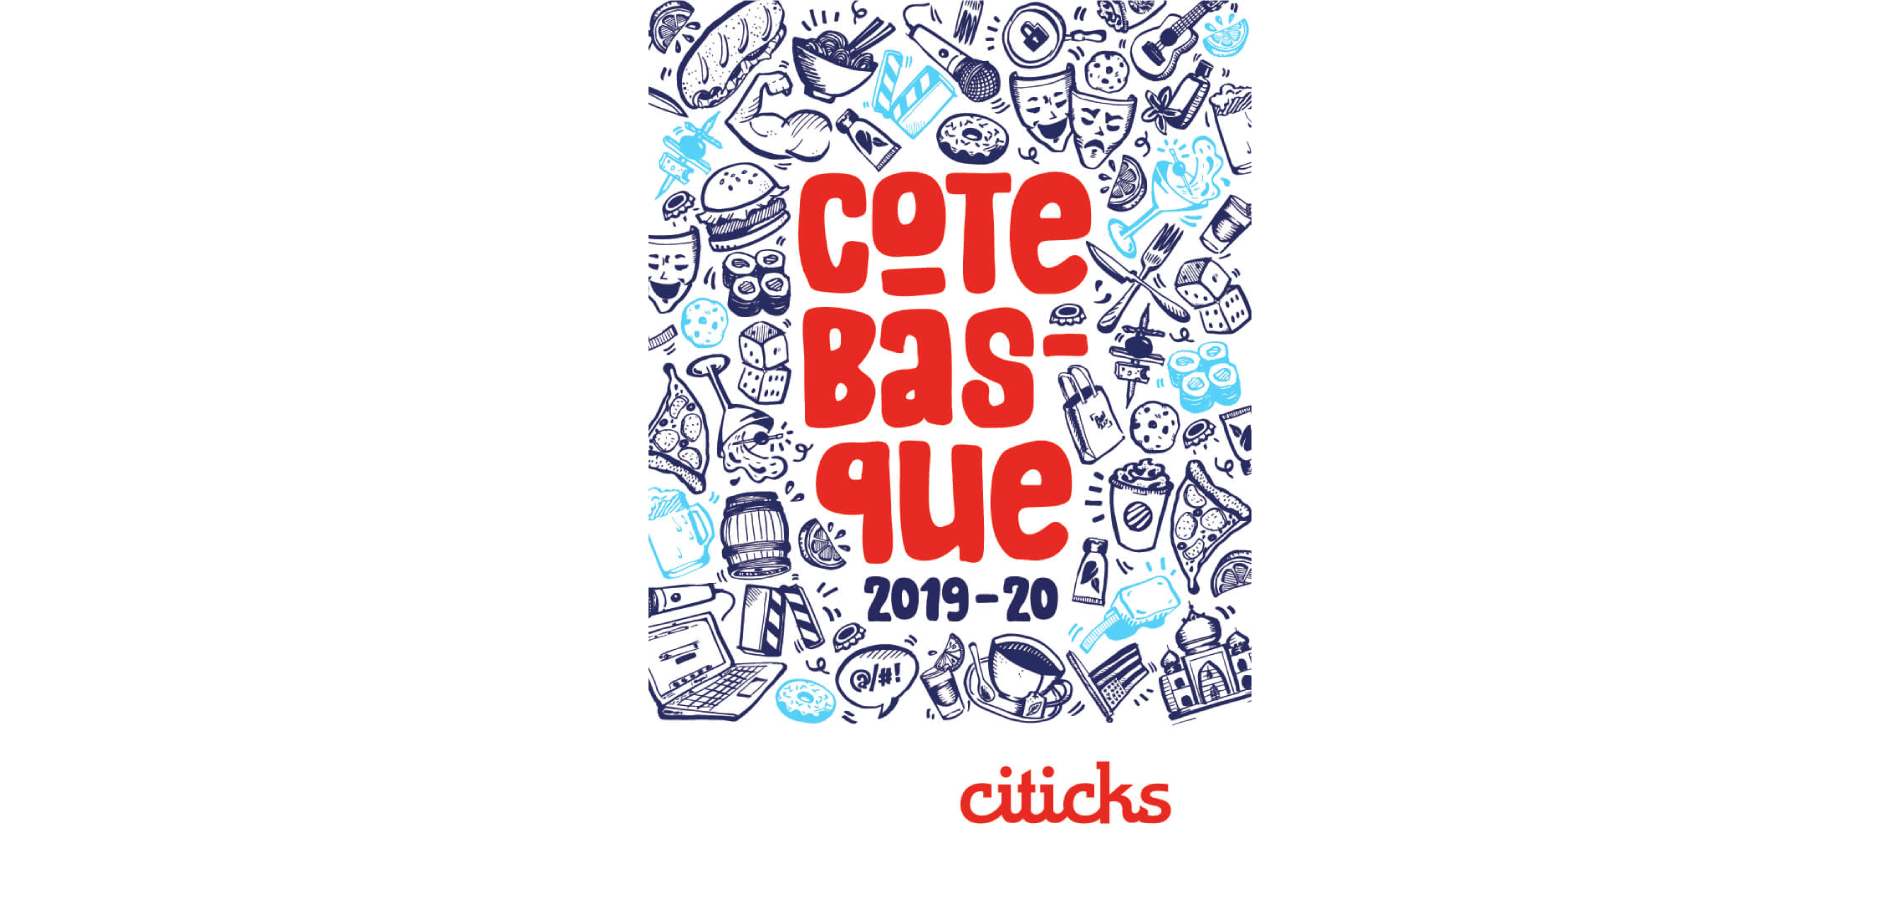 Image article J-1 avant 1 an de bons plans : Citicks is back sur la Côte Basque !